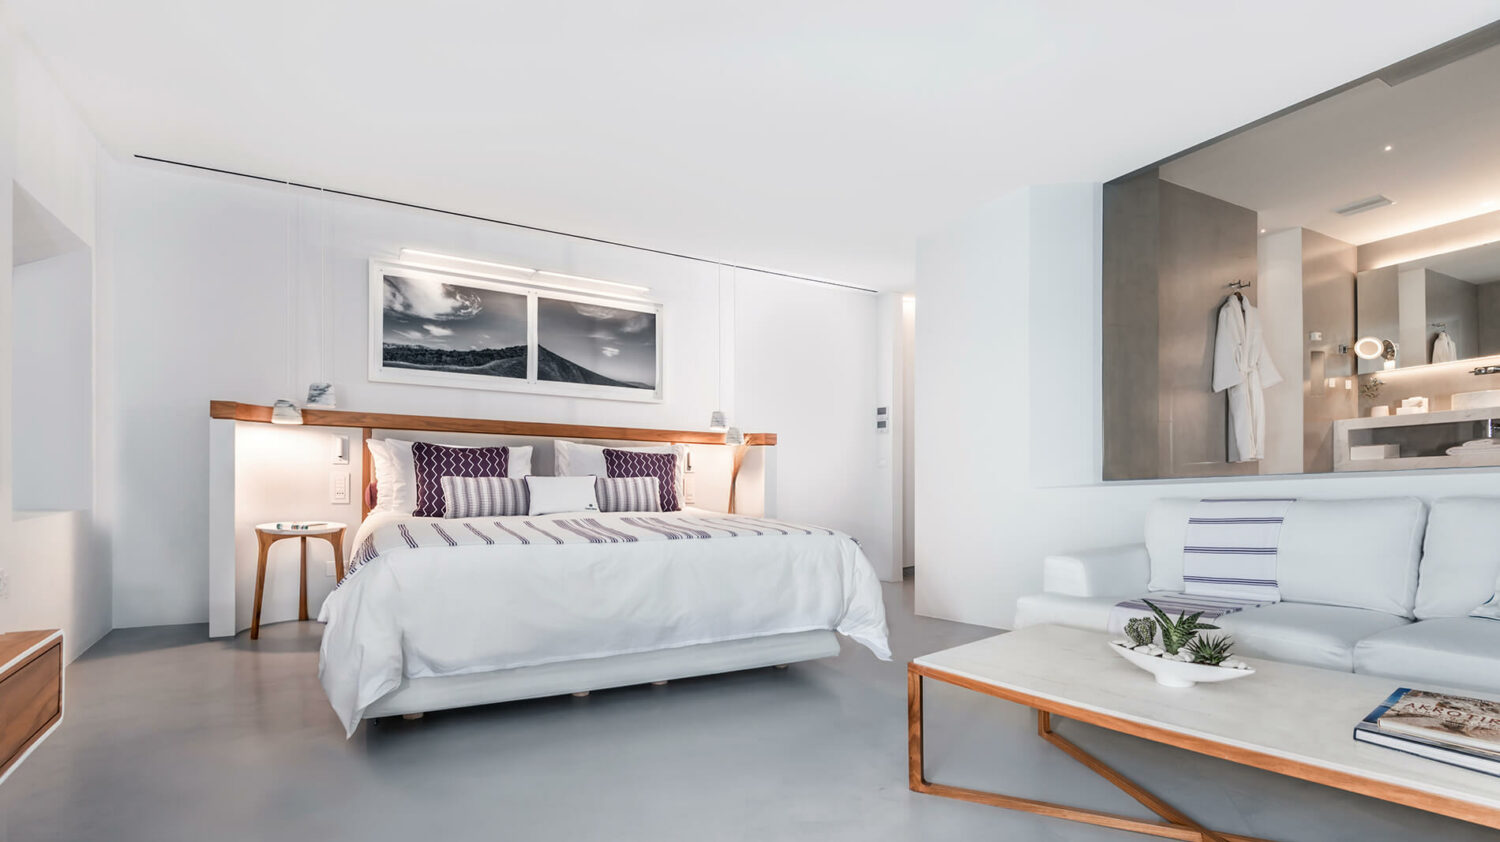 grace hotel, auberge resorts collection greece-bed